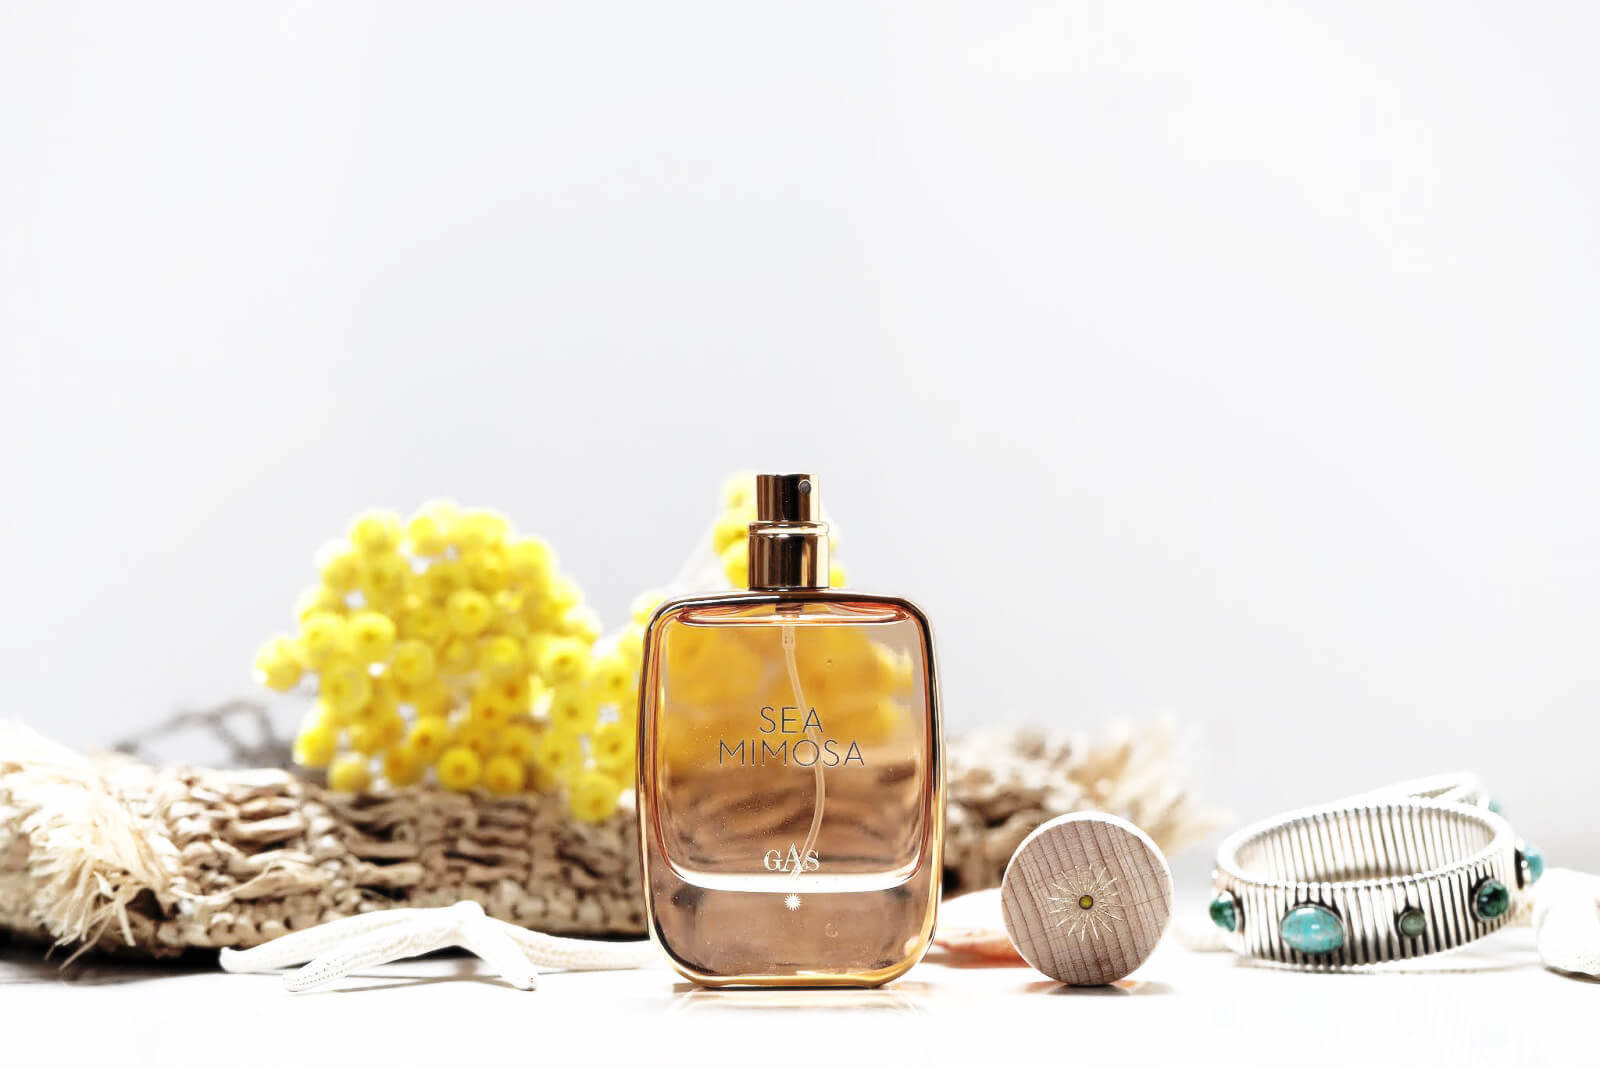 GAS Sea Mimosa Parfum avis